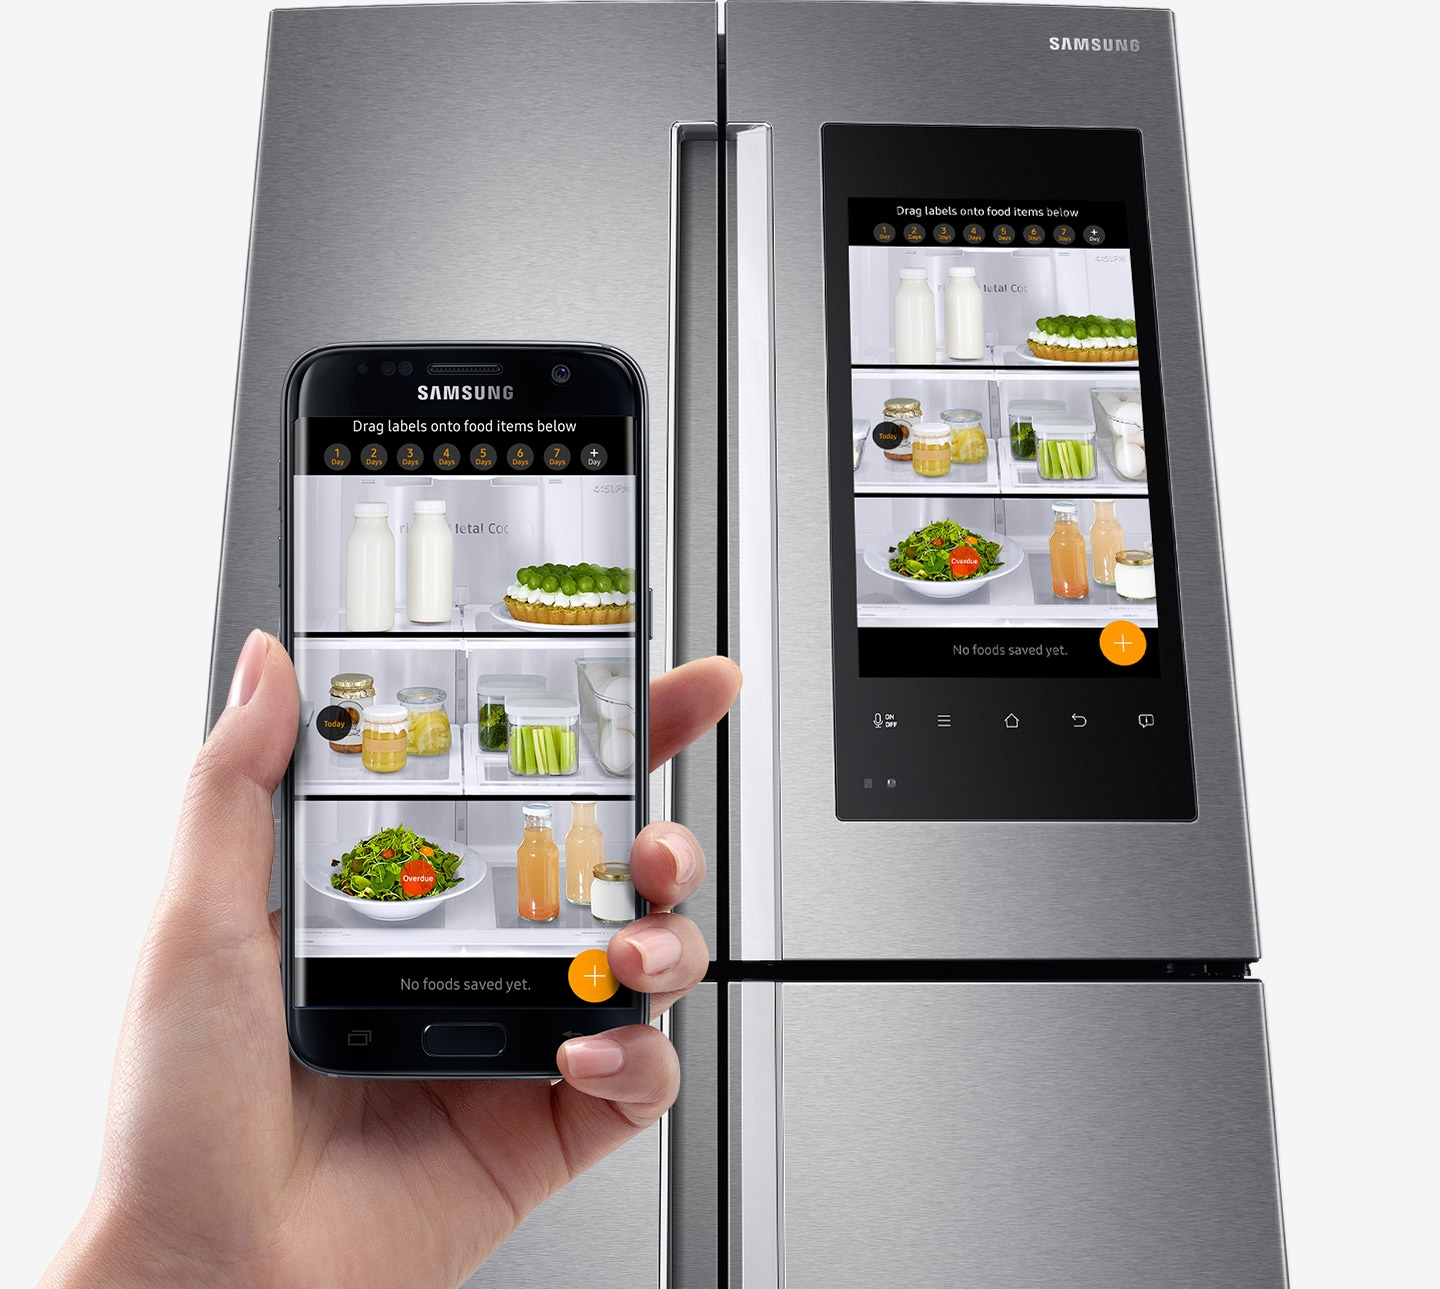 Family Hub Fridge Freezer 550l Rf56k9540sr Samsung Uk Ice Maker Wiring Diagram Hands Holding A Smart Phone And Product Image With Door Closed Foods Inside